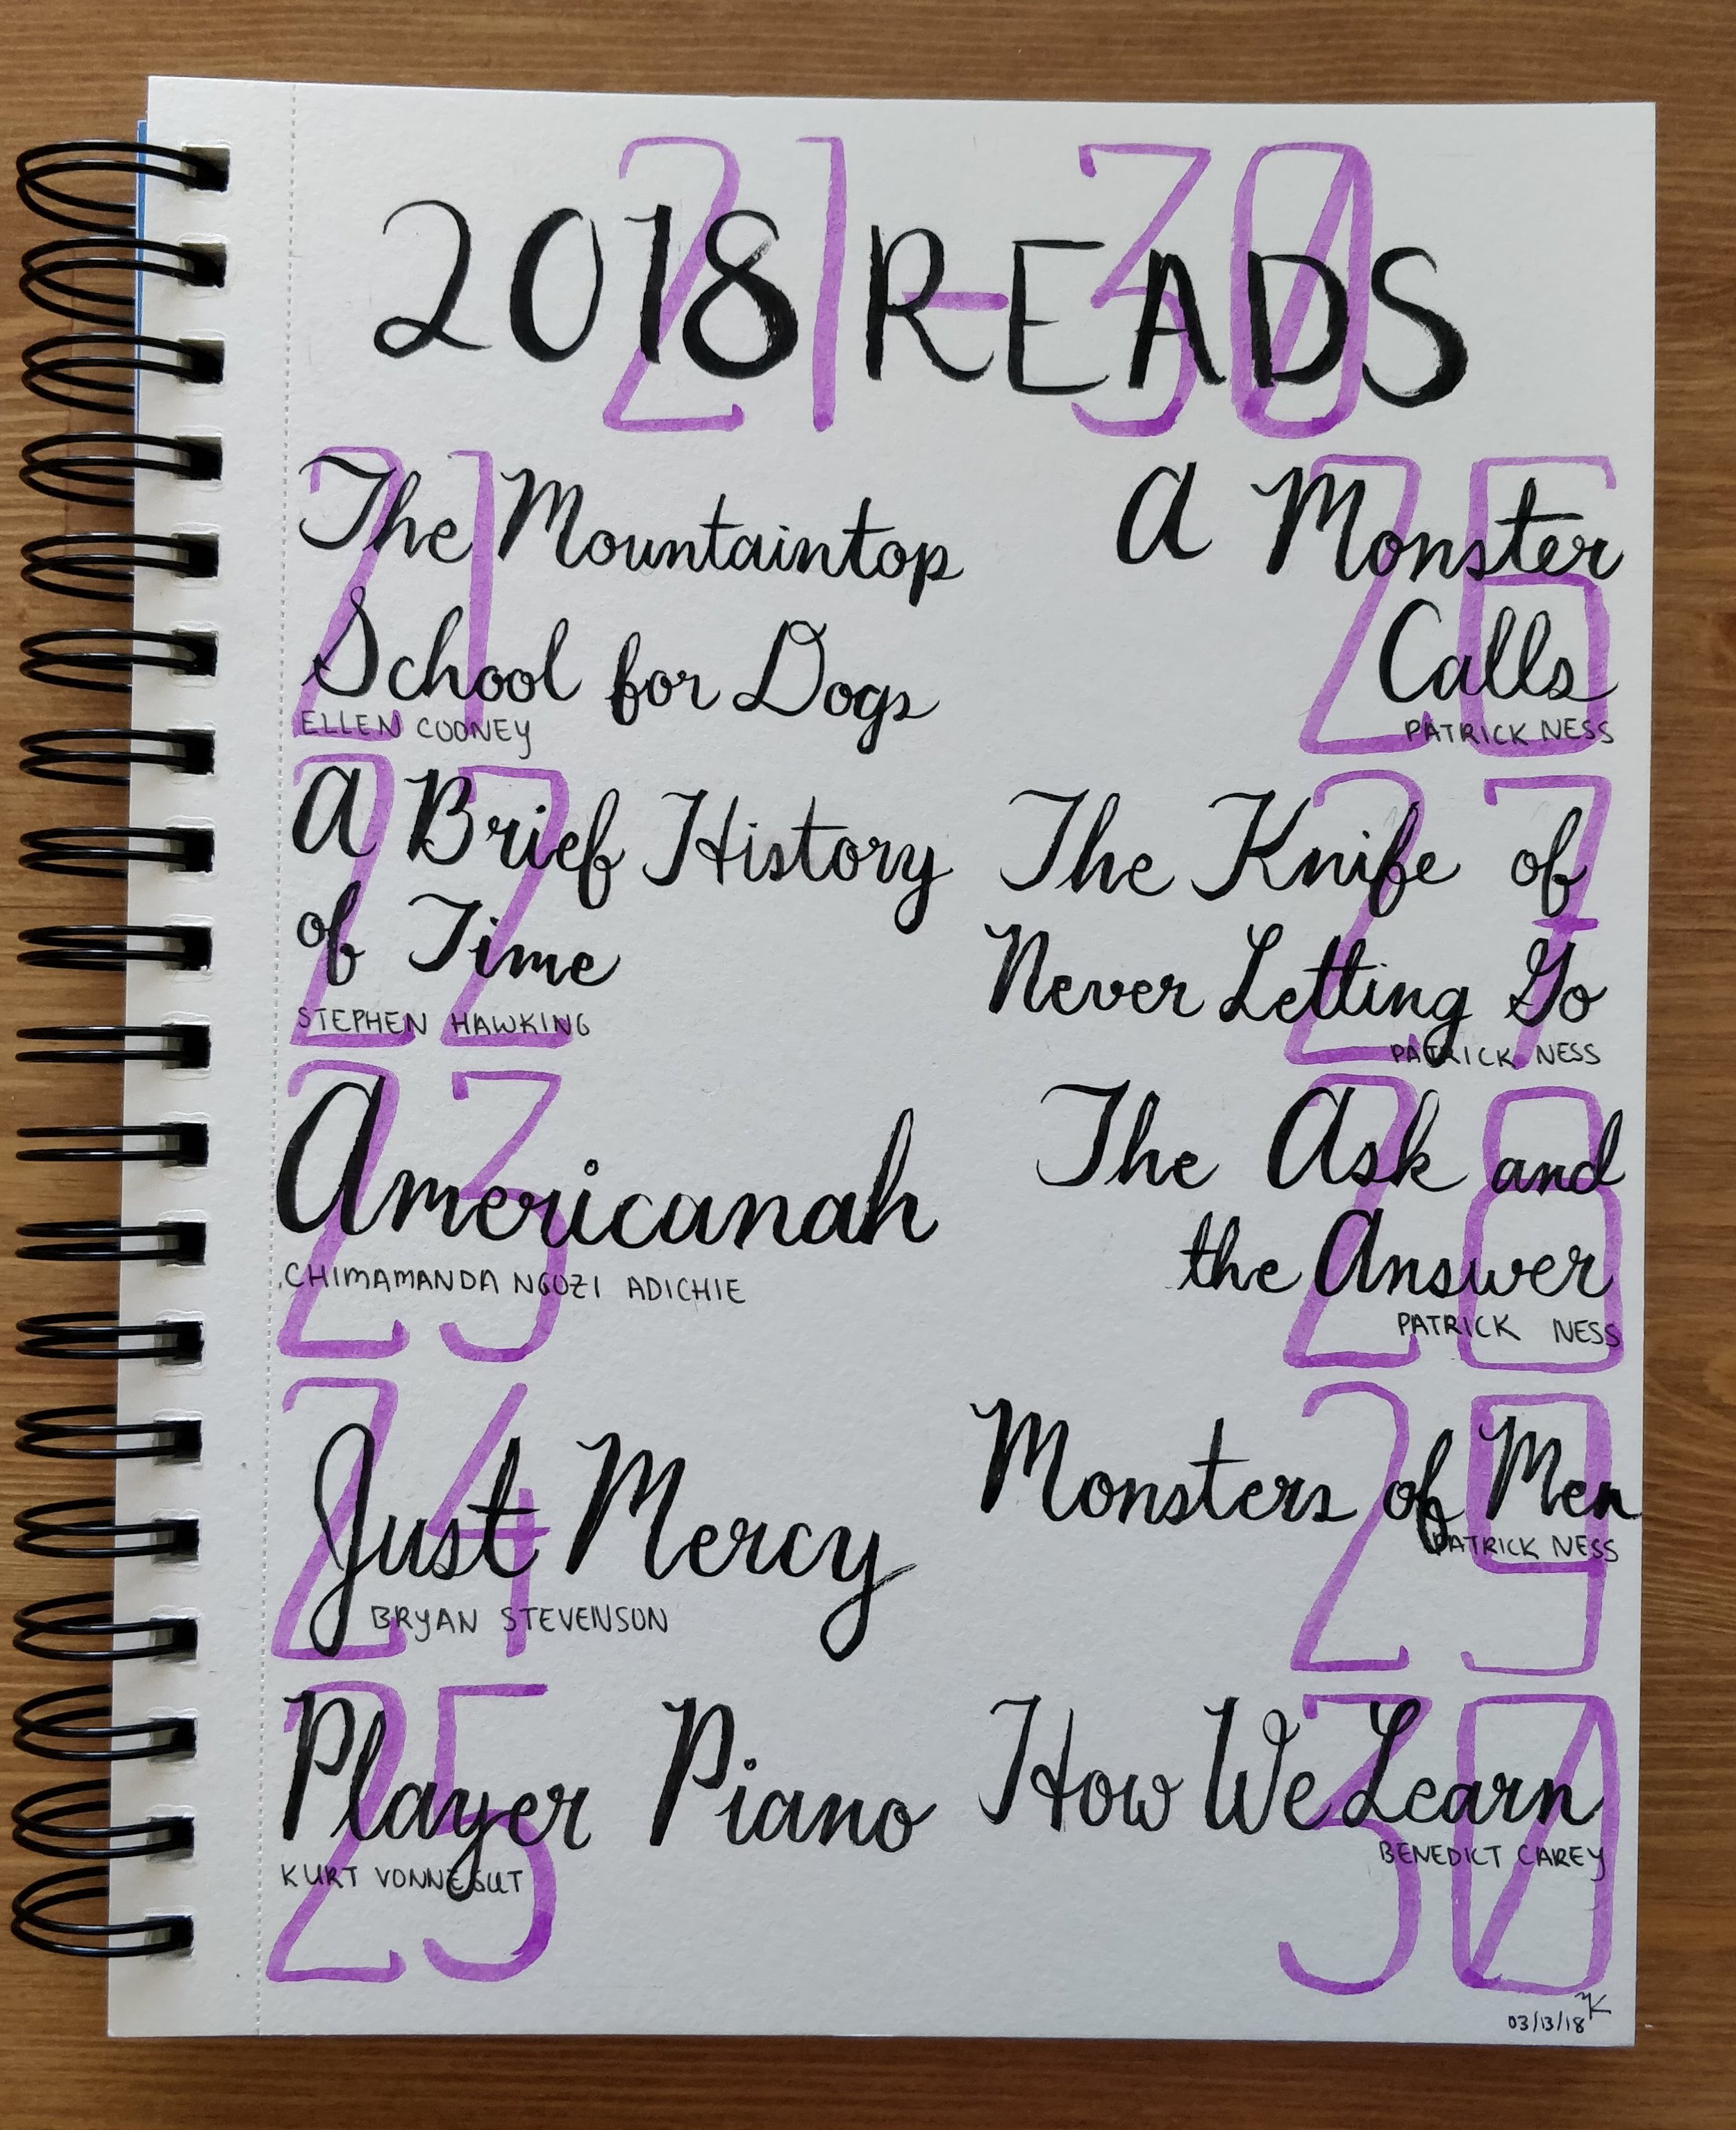 Some of the books I've read recently. I make a list every 10 books.